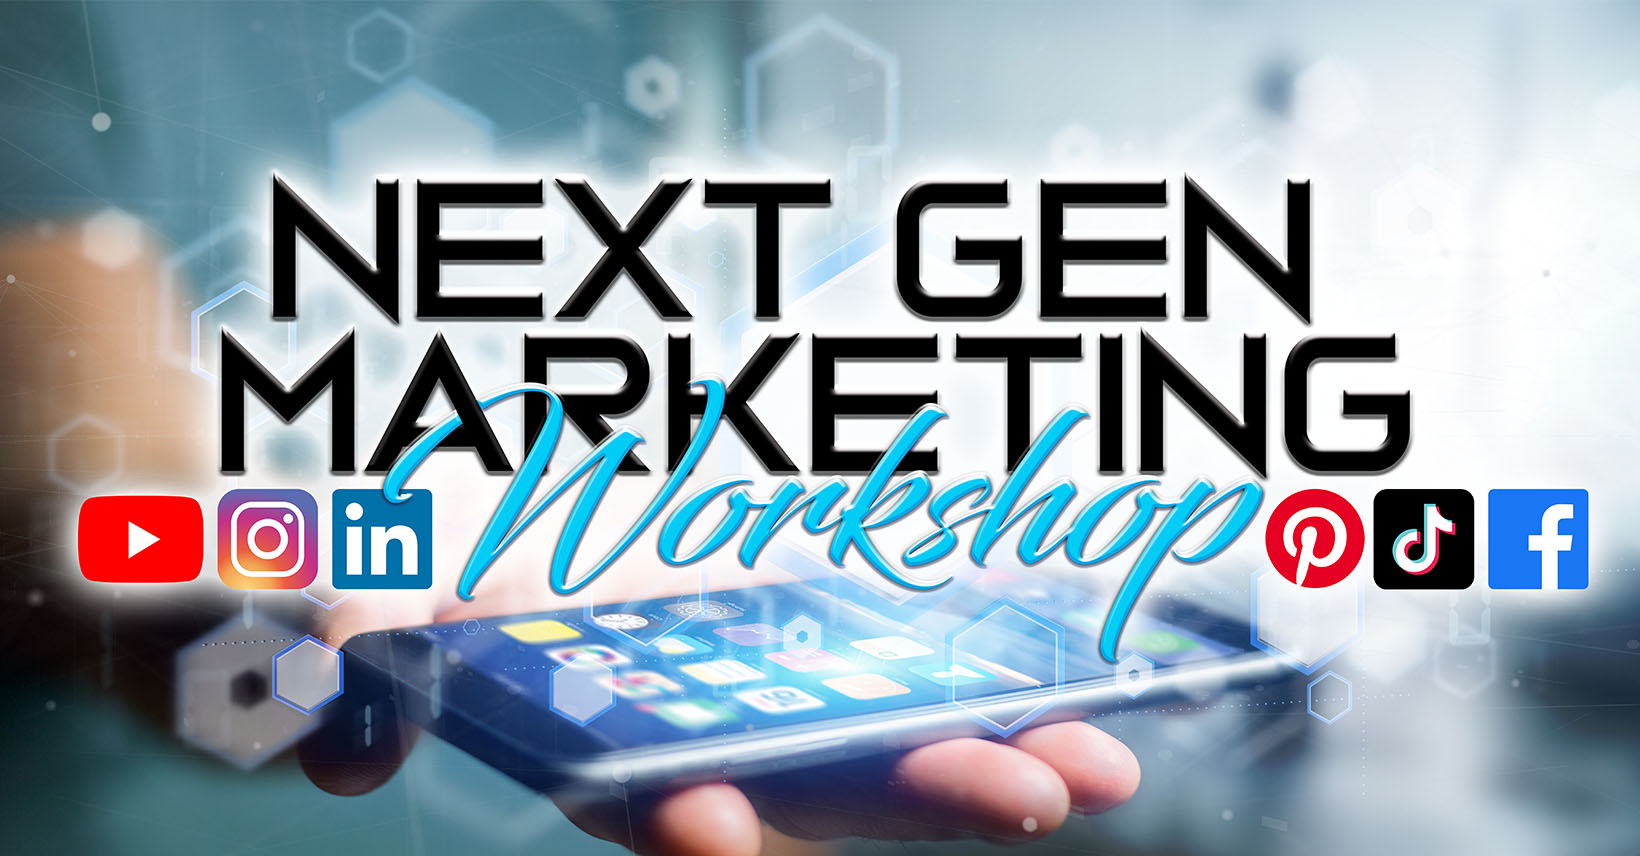 FB-Cover-Photo-Next-Gen-Marketing